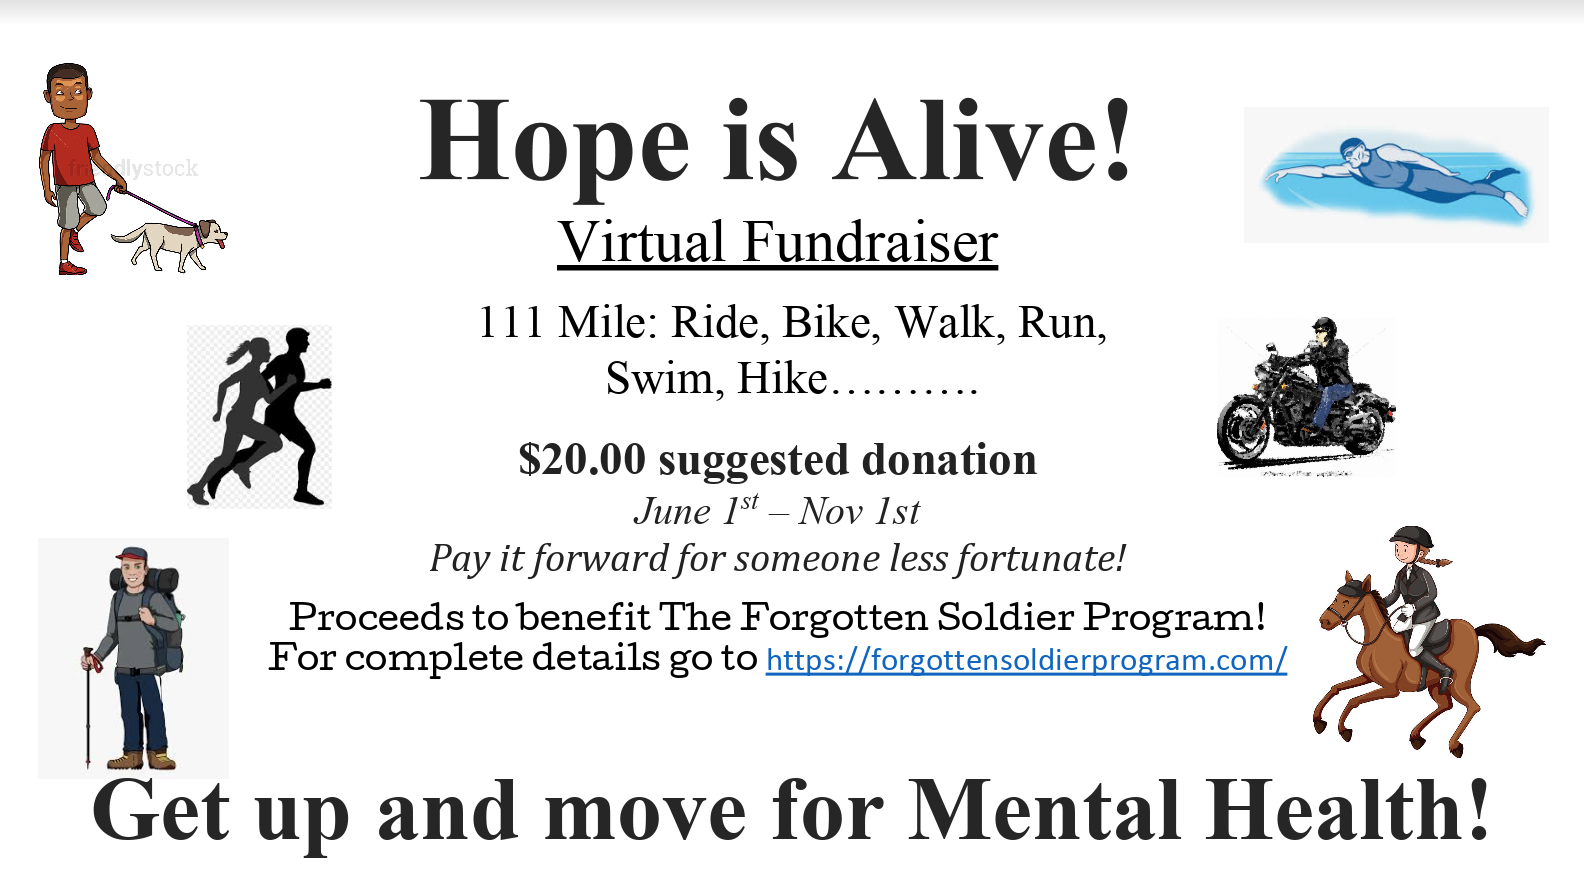 hope is alive virtual fundraiser for forgotten soldier program